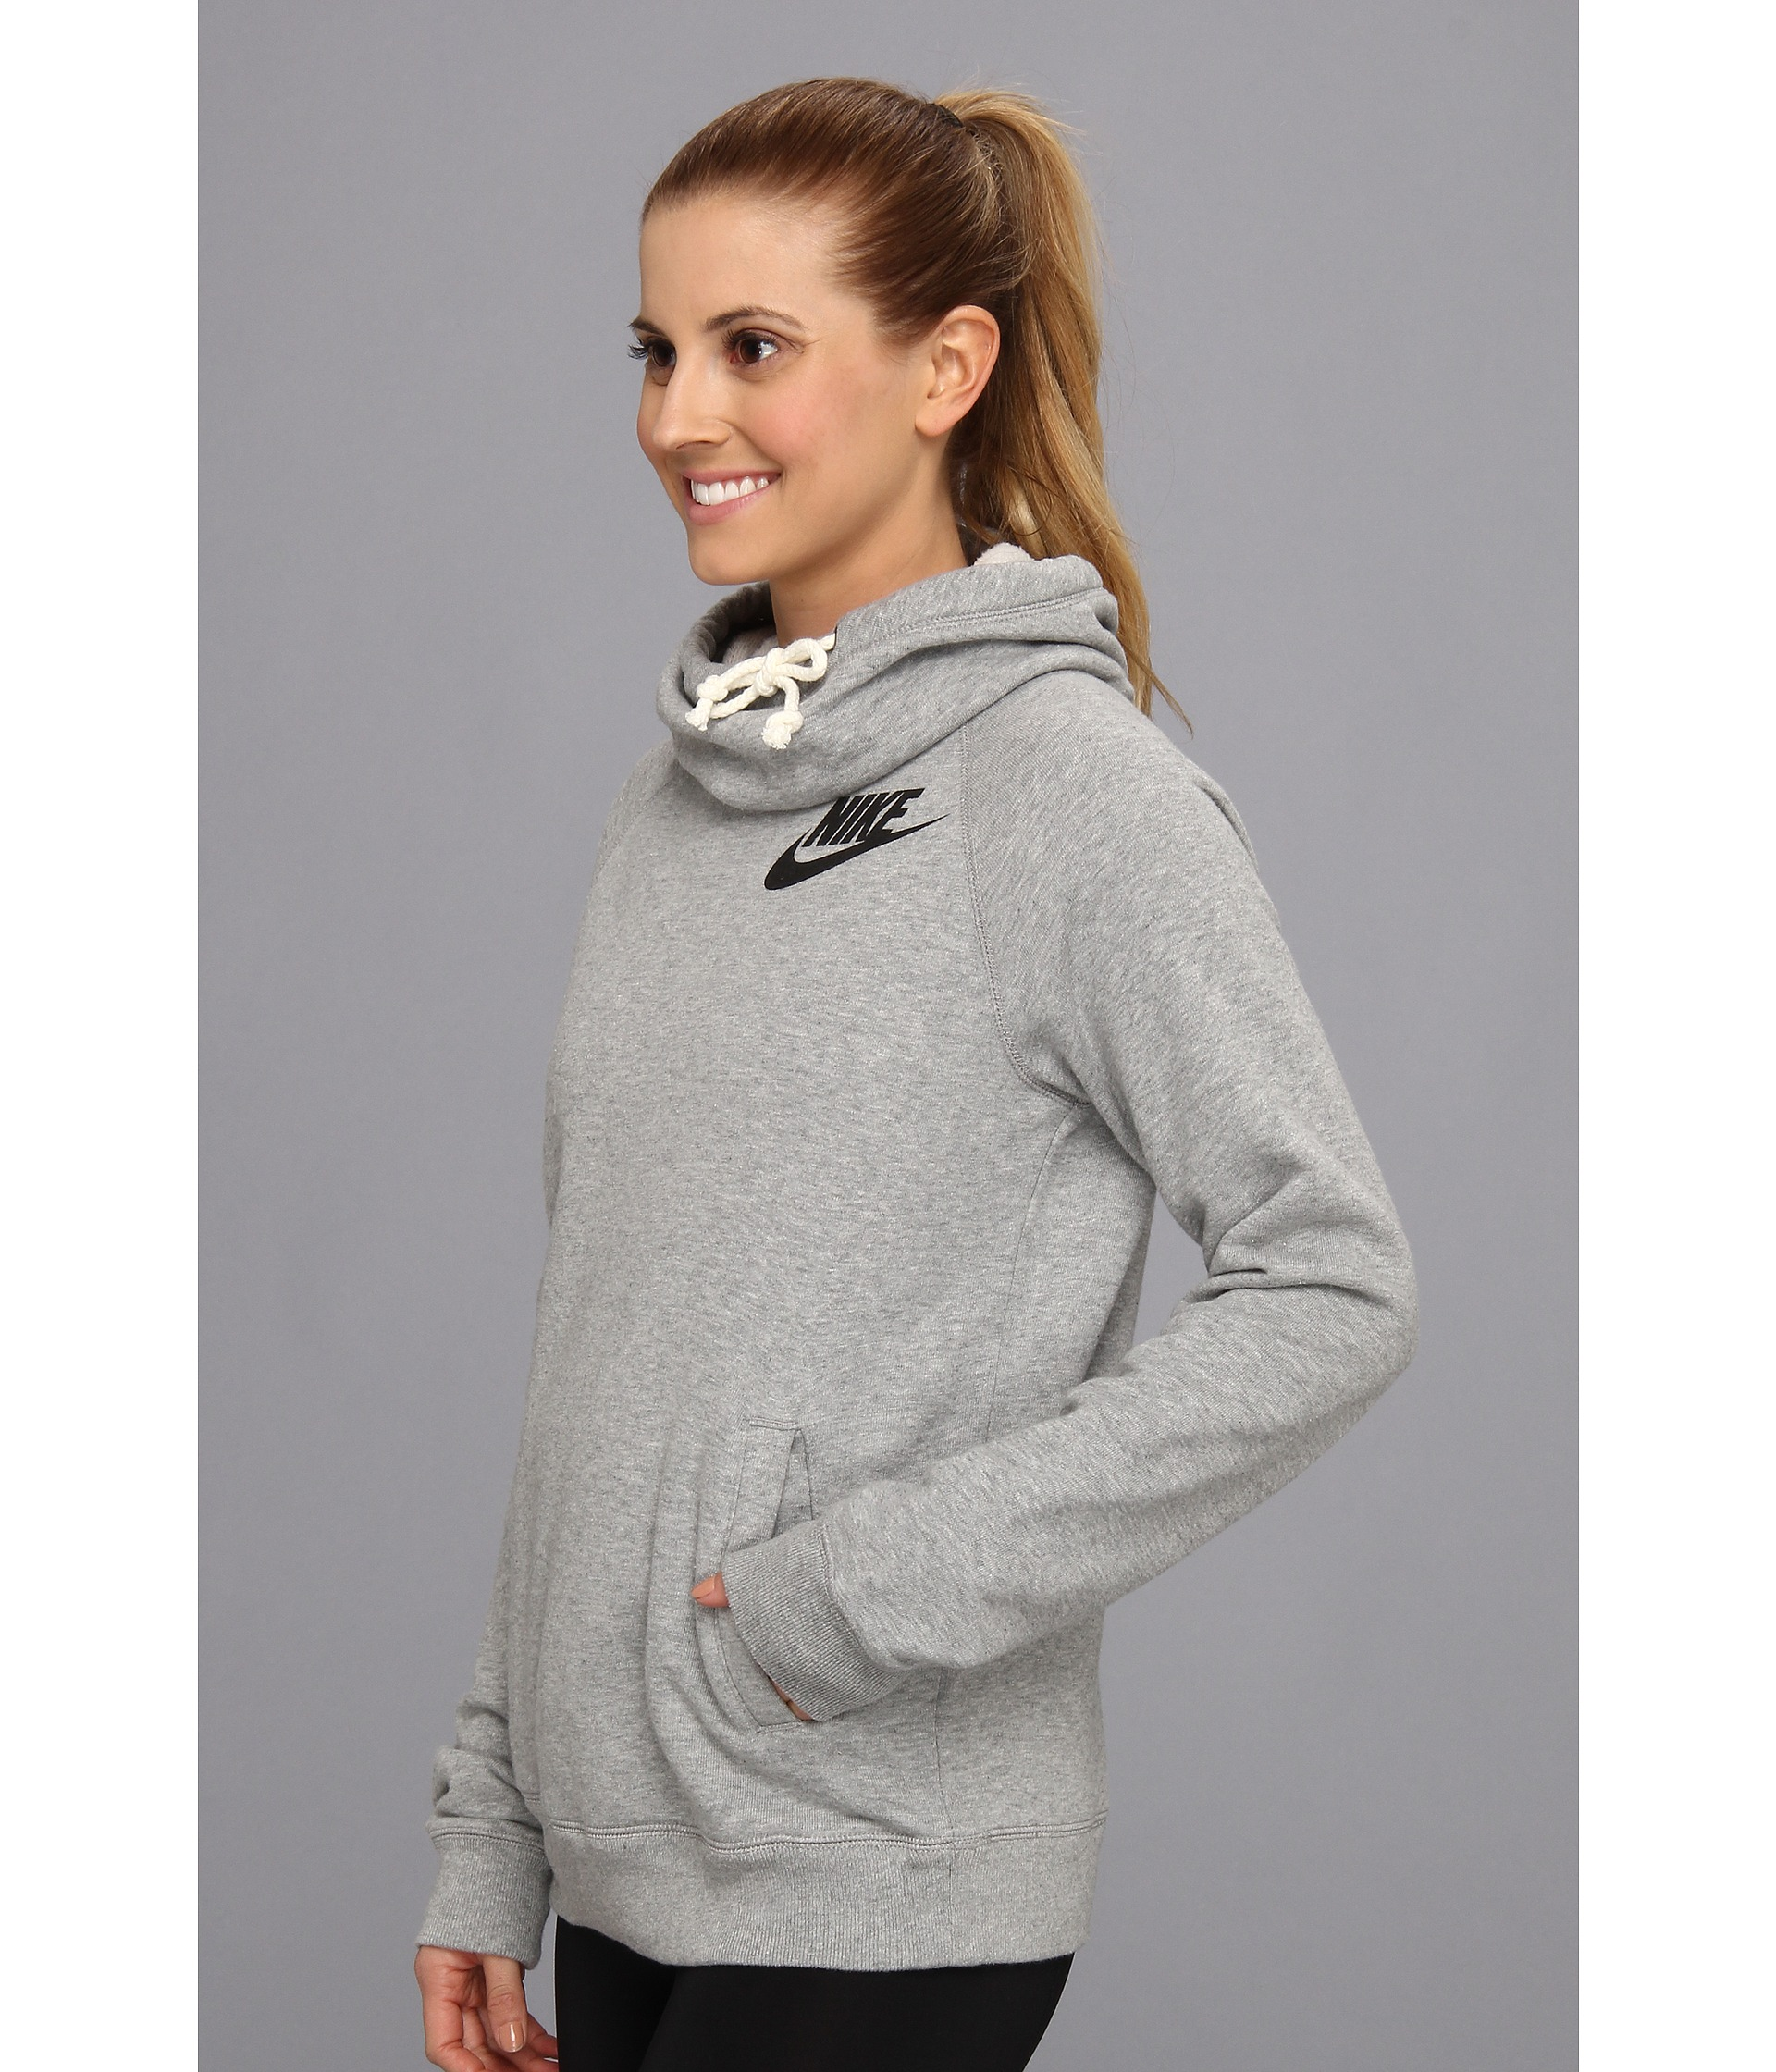 Nike Rally Funnel Neck Hoodie - Zappos.com Free Shipping BOTH Ways